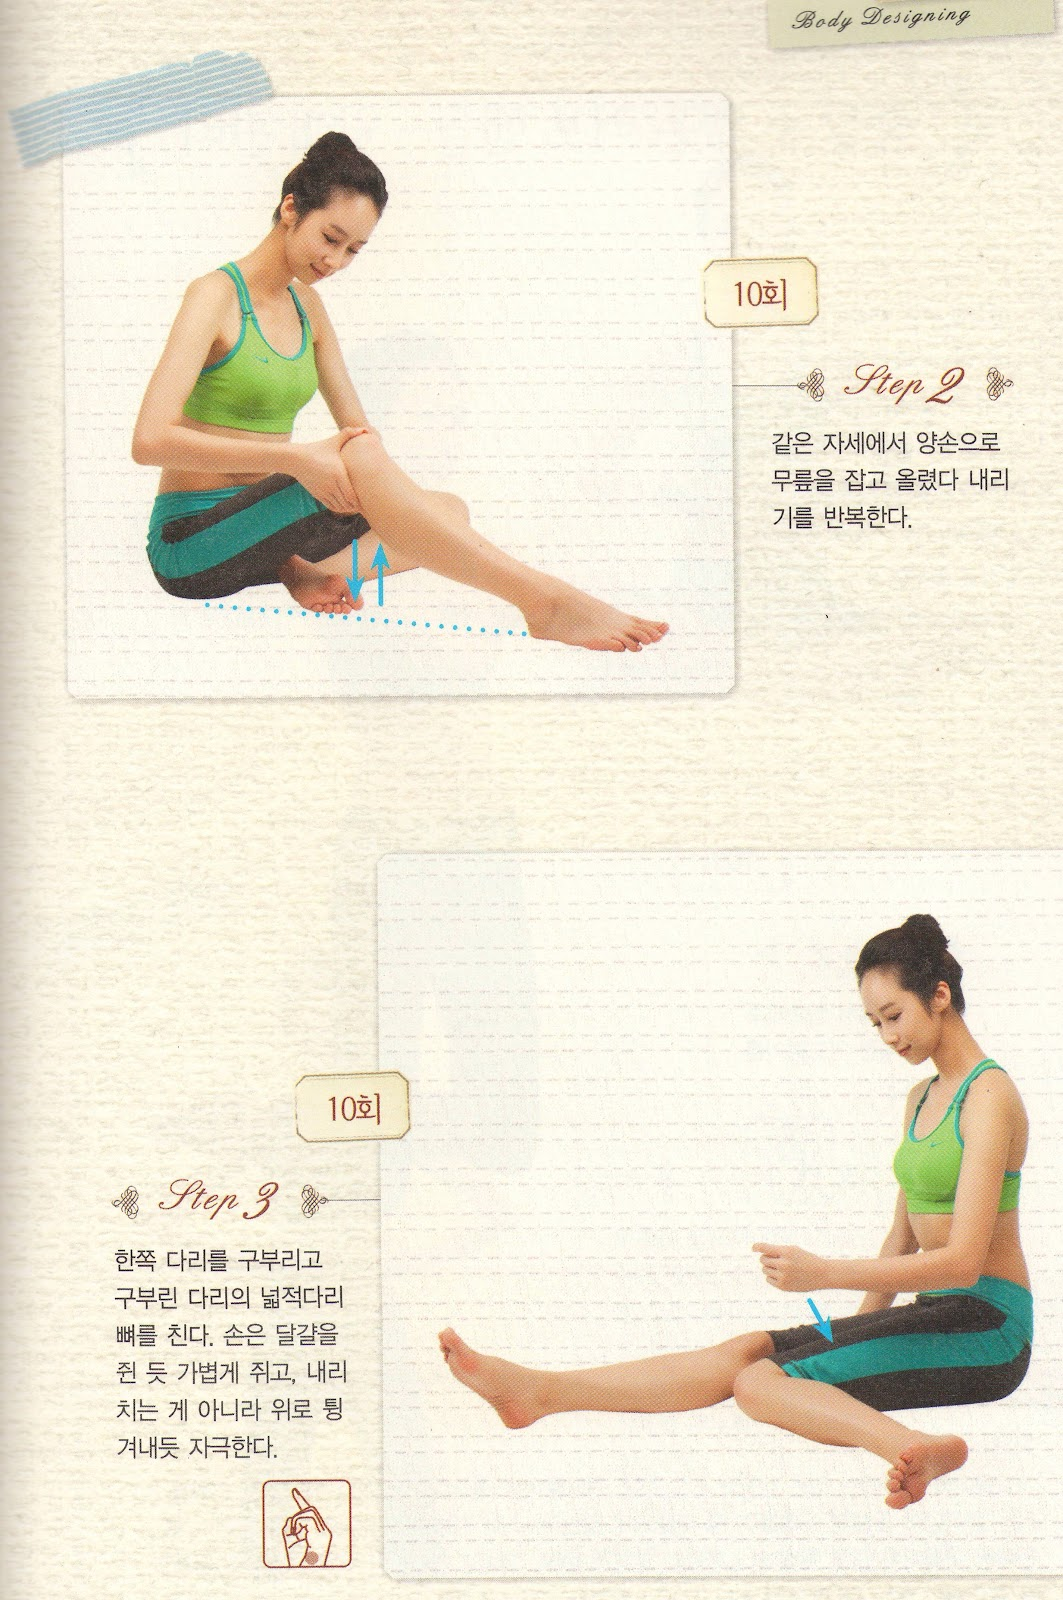 Yakson(약손명가): Yoga is a good way to make your body shape ...